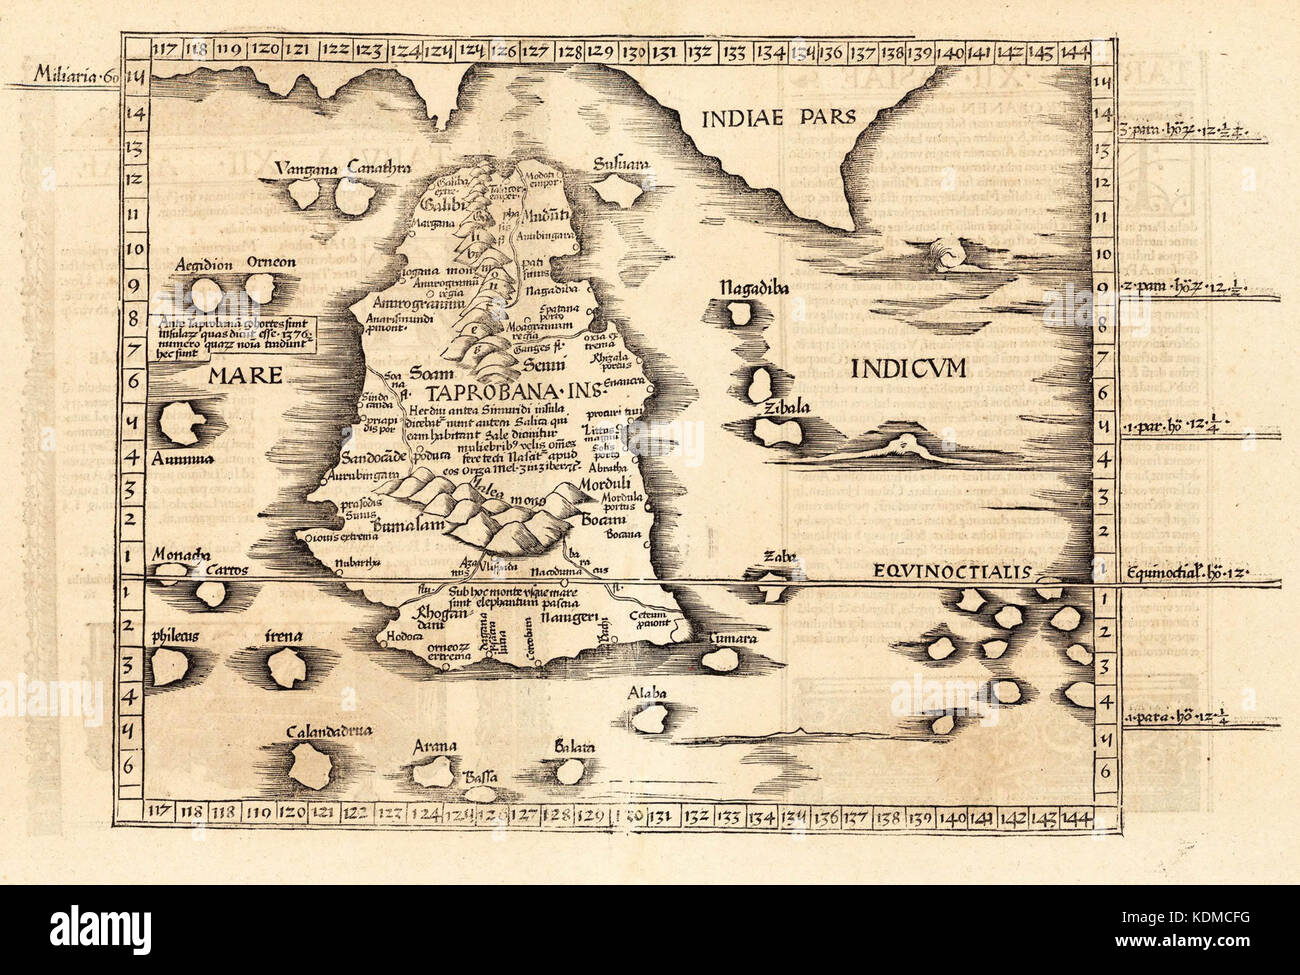 1st Century World Map.Ptolemy S World Map Of Ceylon First Century Ce In A 1535 Stock